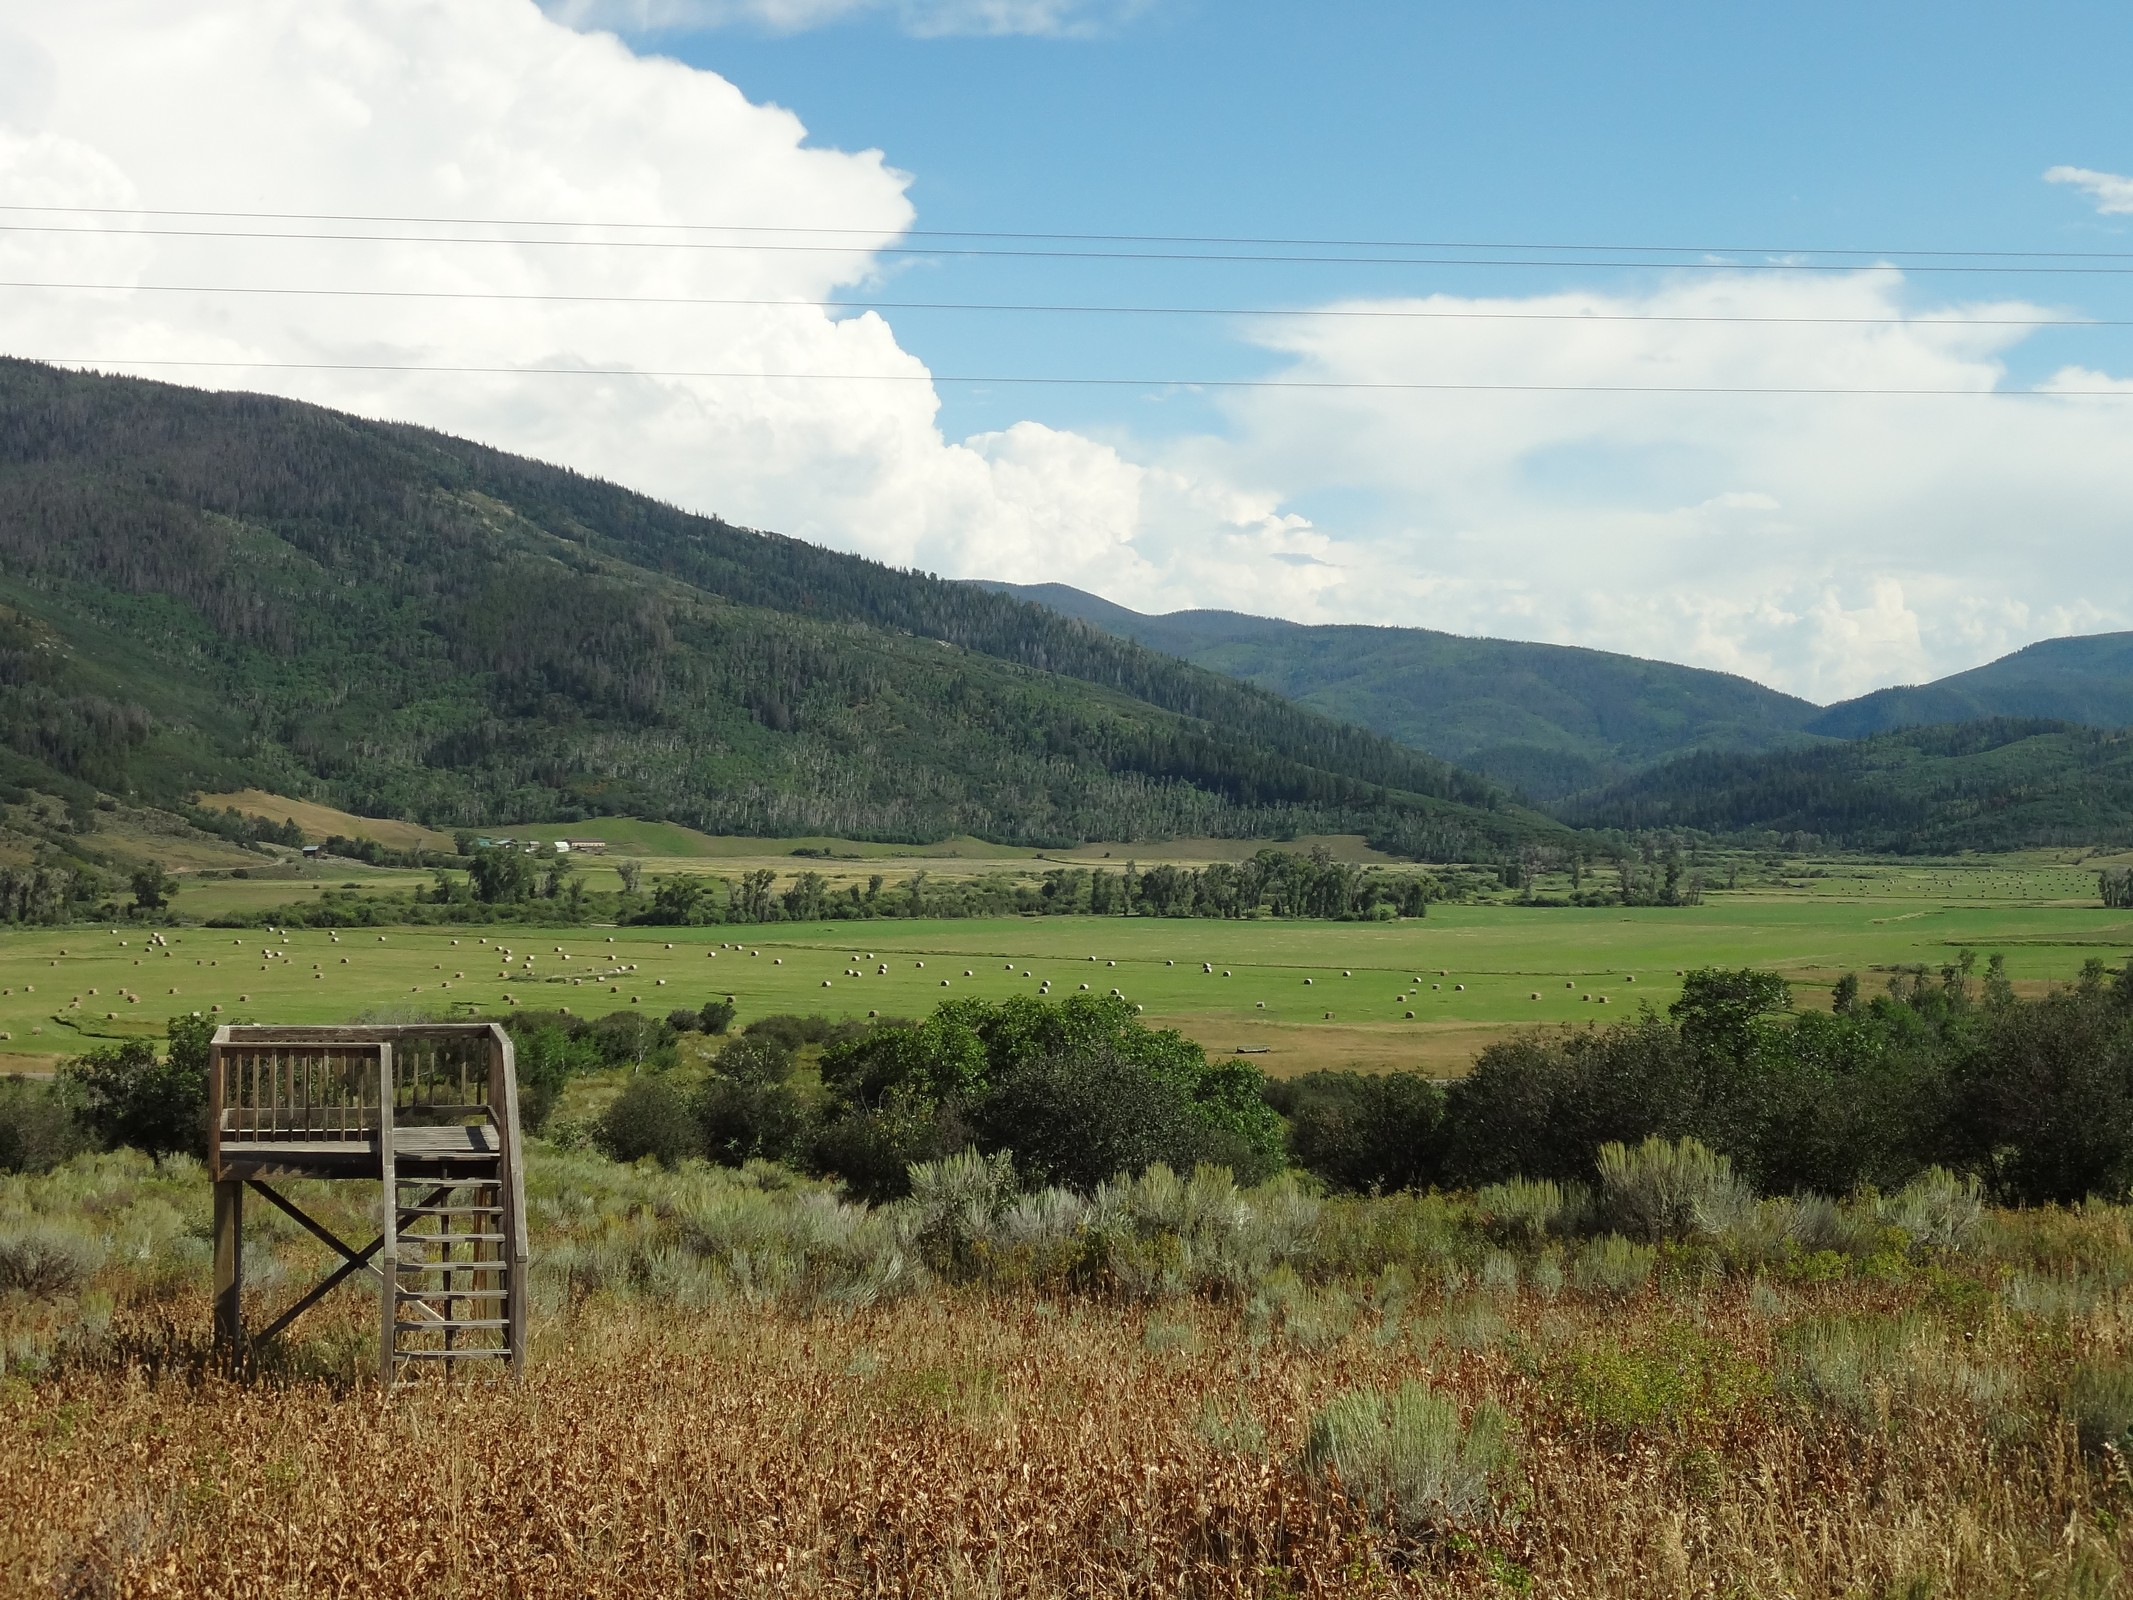 Land for Sale at Lake Catamount Lot 22 in the South Valley 29100 Yowell Lane Steamboat Springs, Colorado, 80487 United States